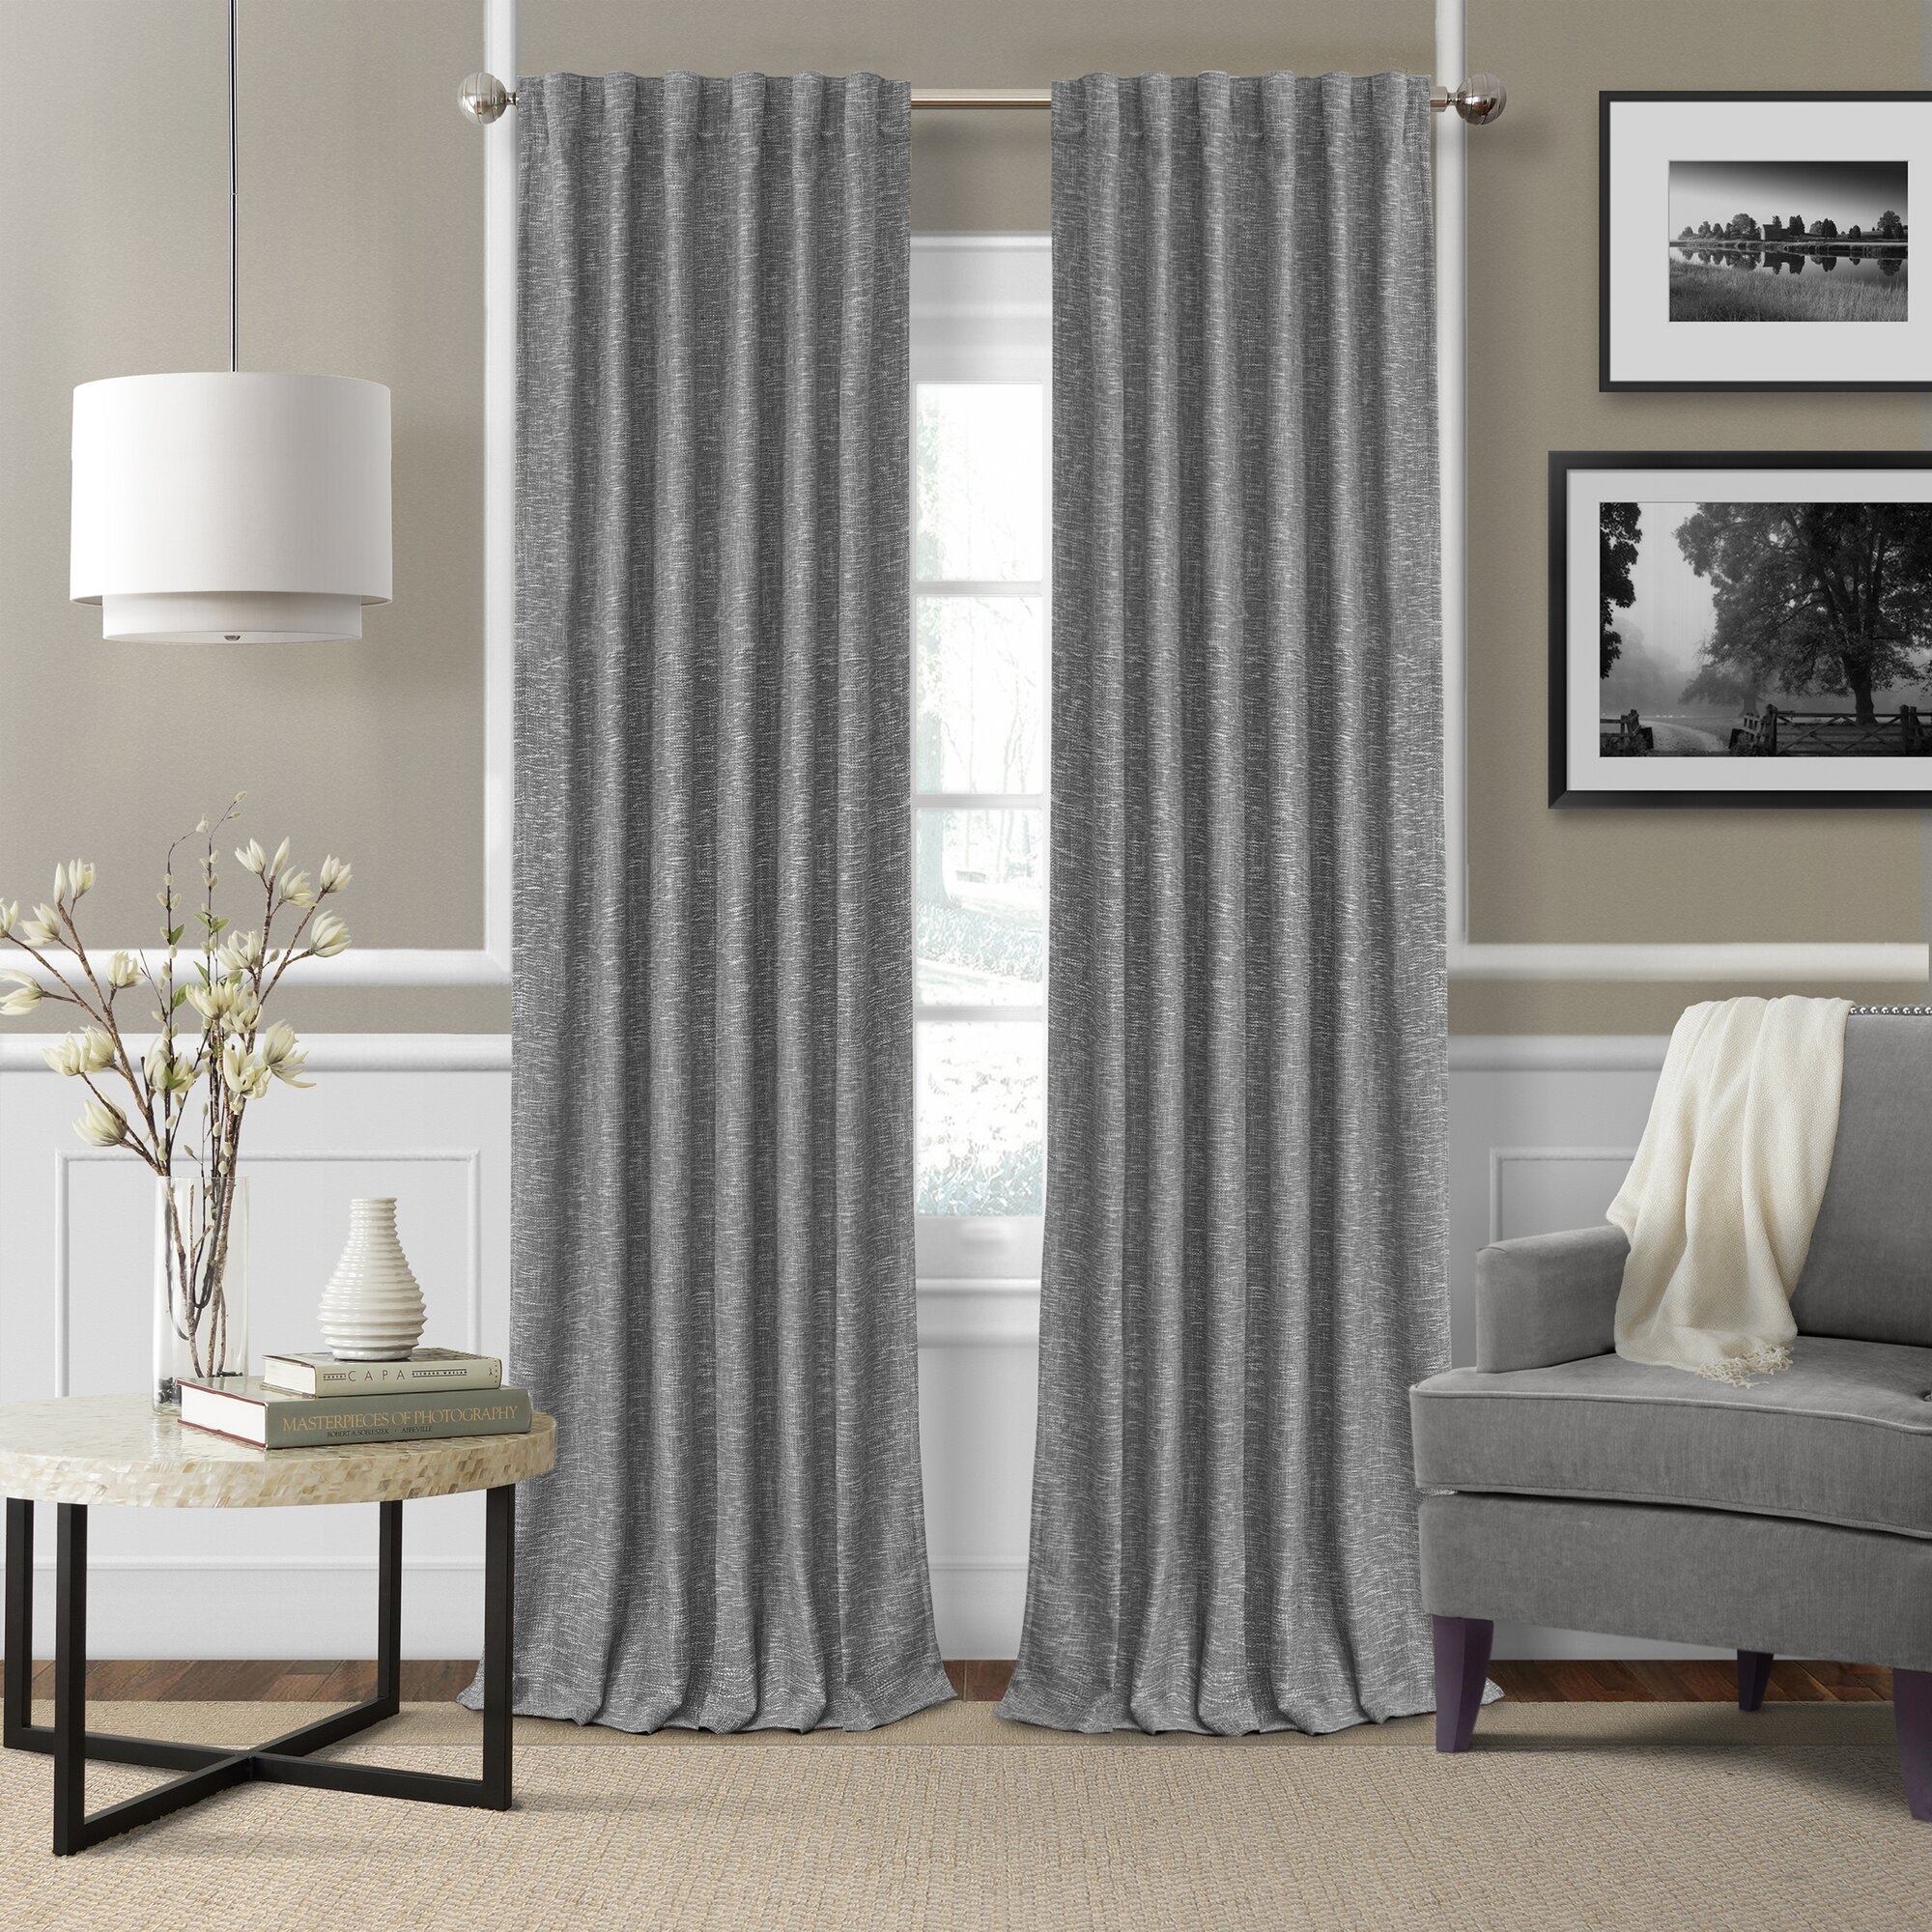 Modern grommet top curtains - Colton 3 In 1 Solid Blackout Thermal Rod Pocket Single Curtain Panel